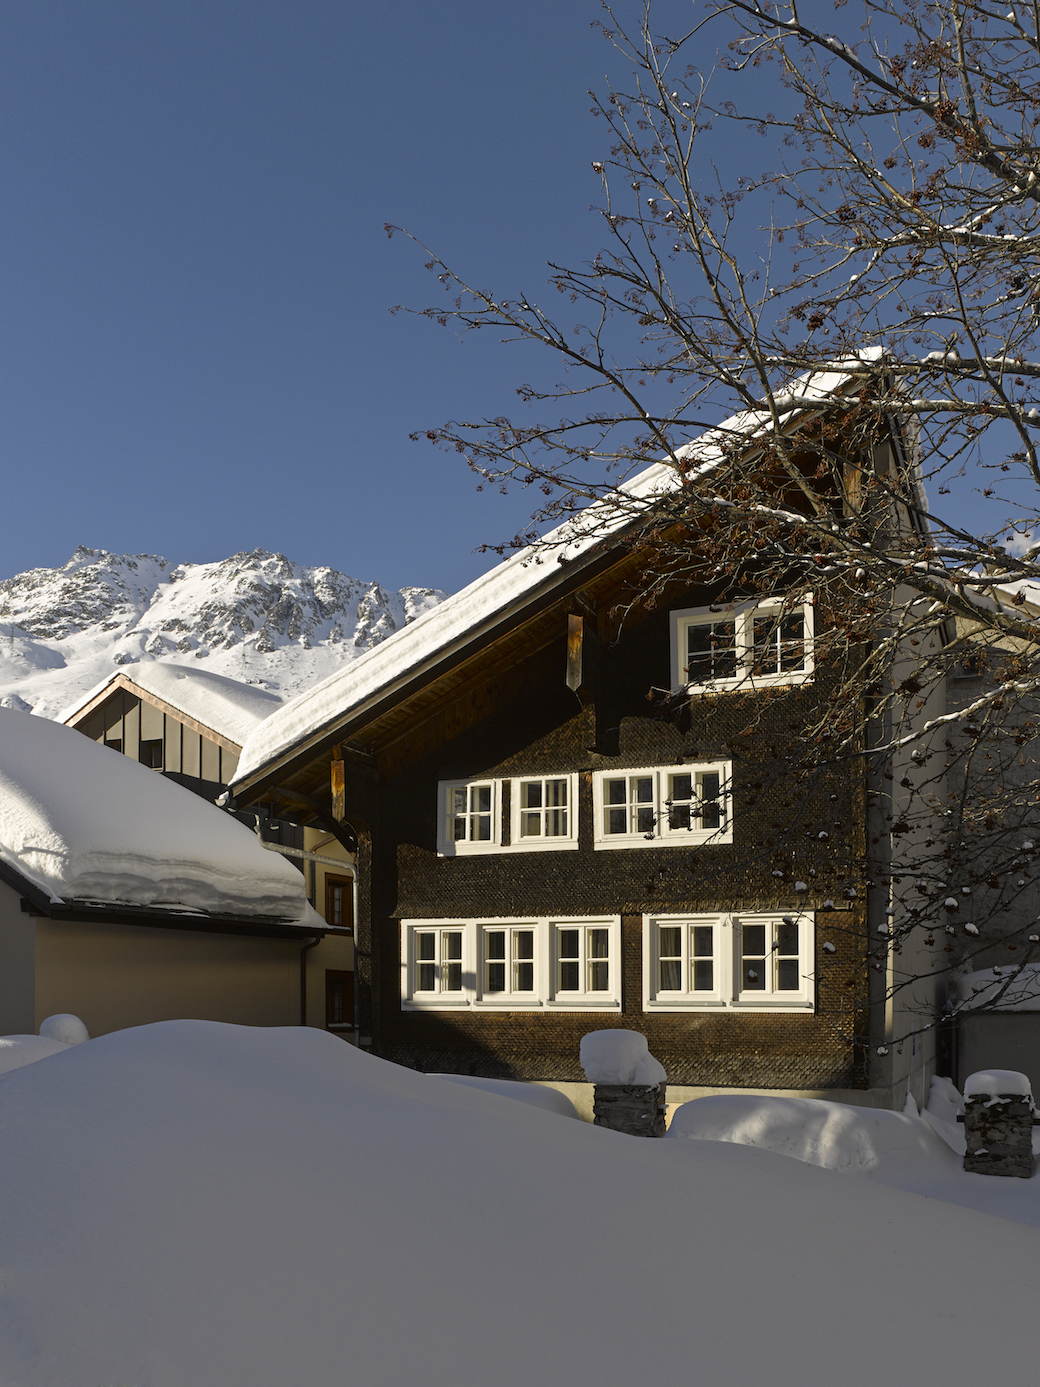 Alpine Chalet, Andermatt, Switzerland, available through The Modern House.